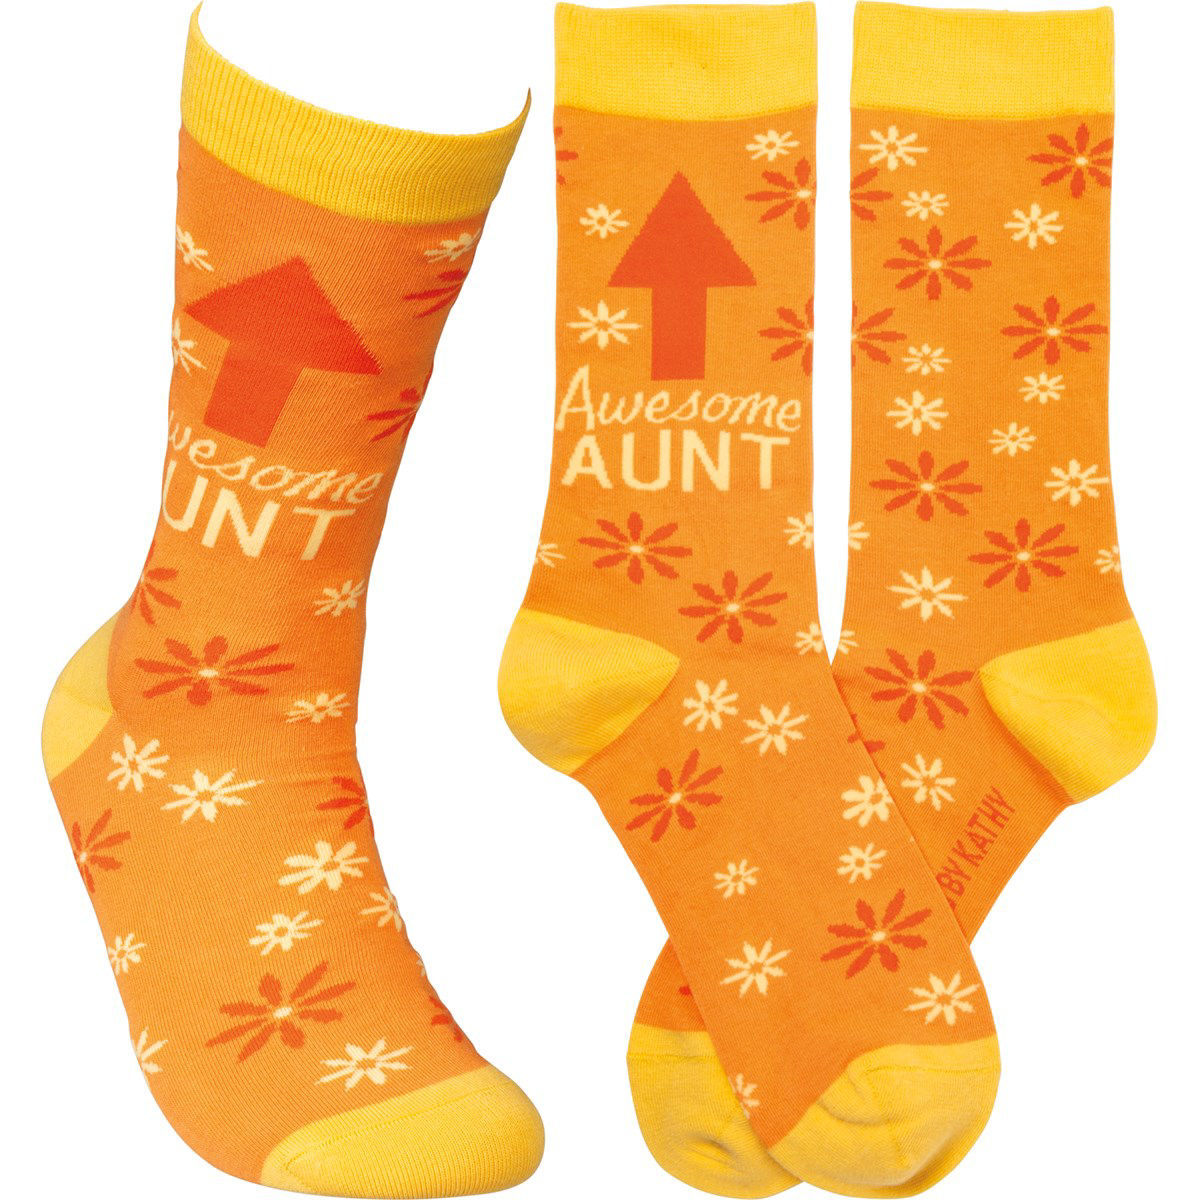 Awesome Aunt Socks by Primitives by Kathy